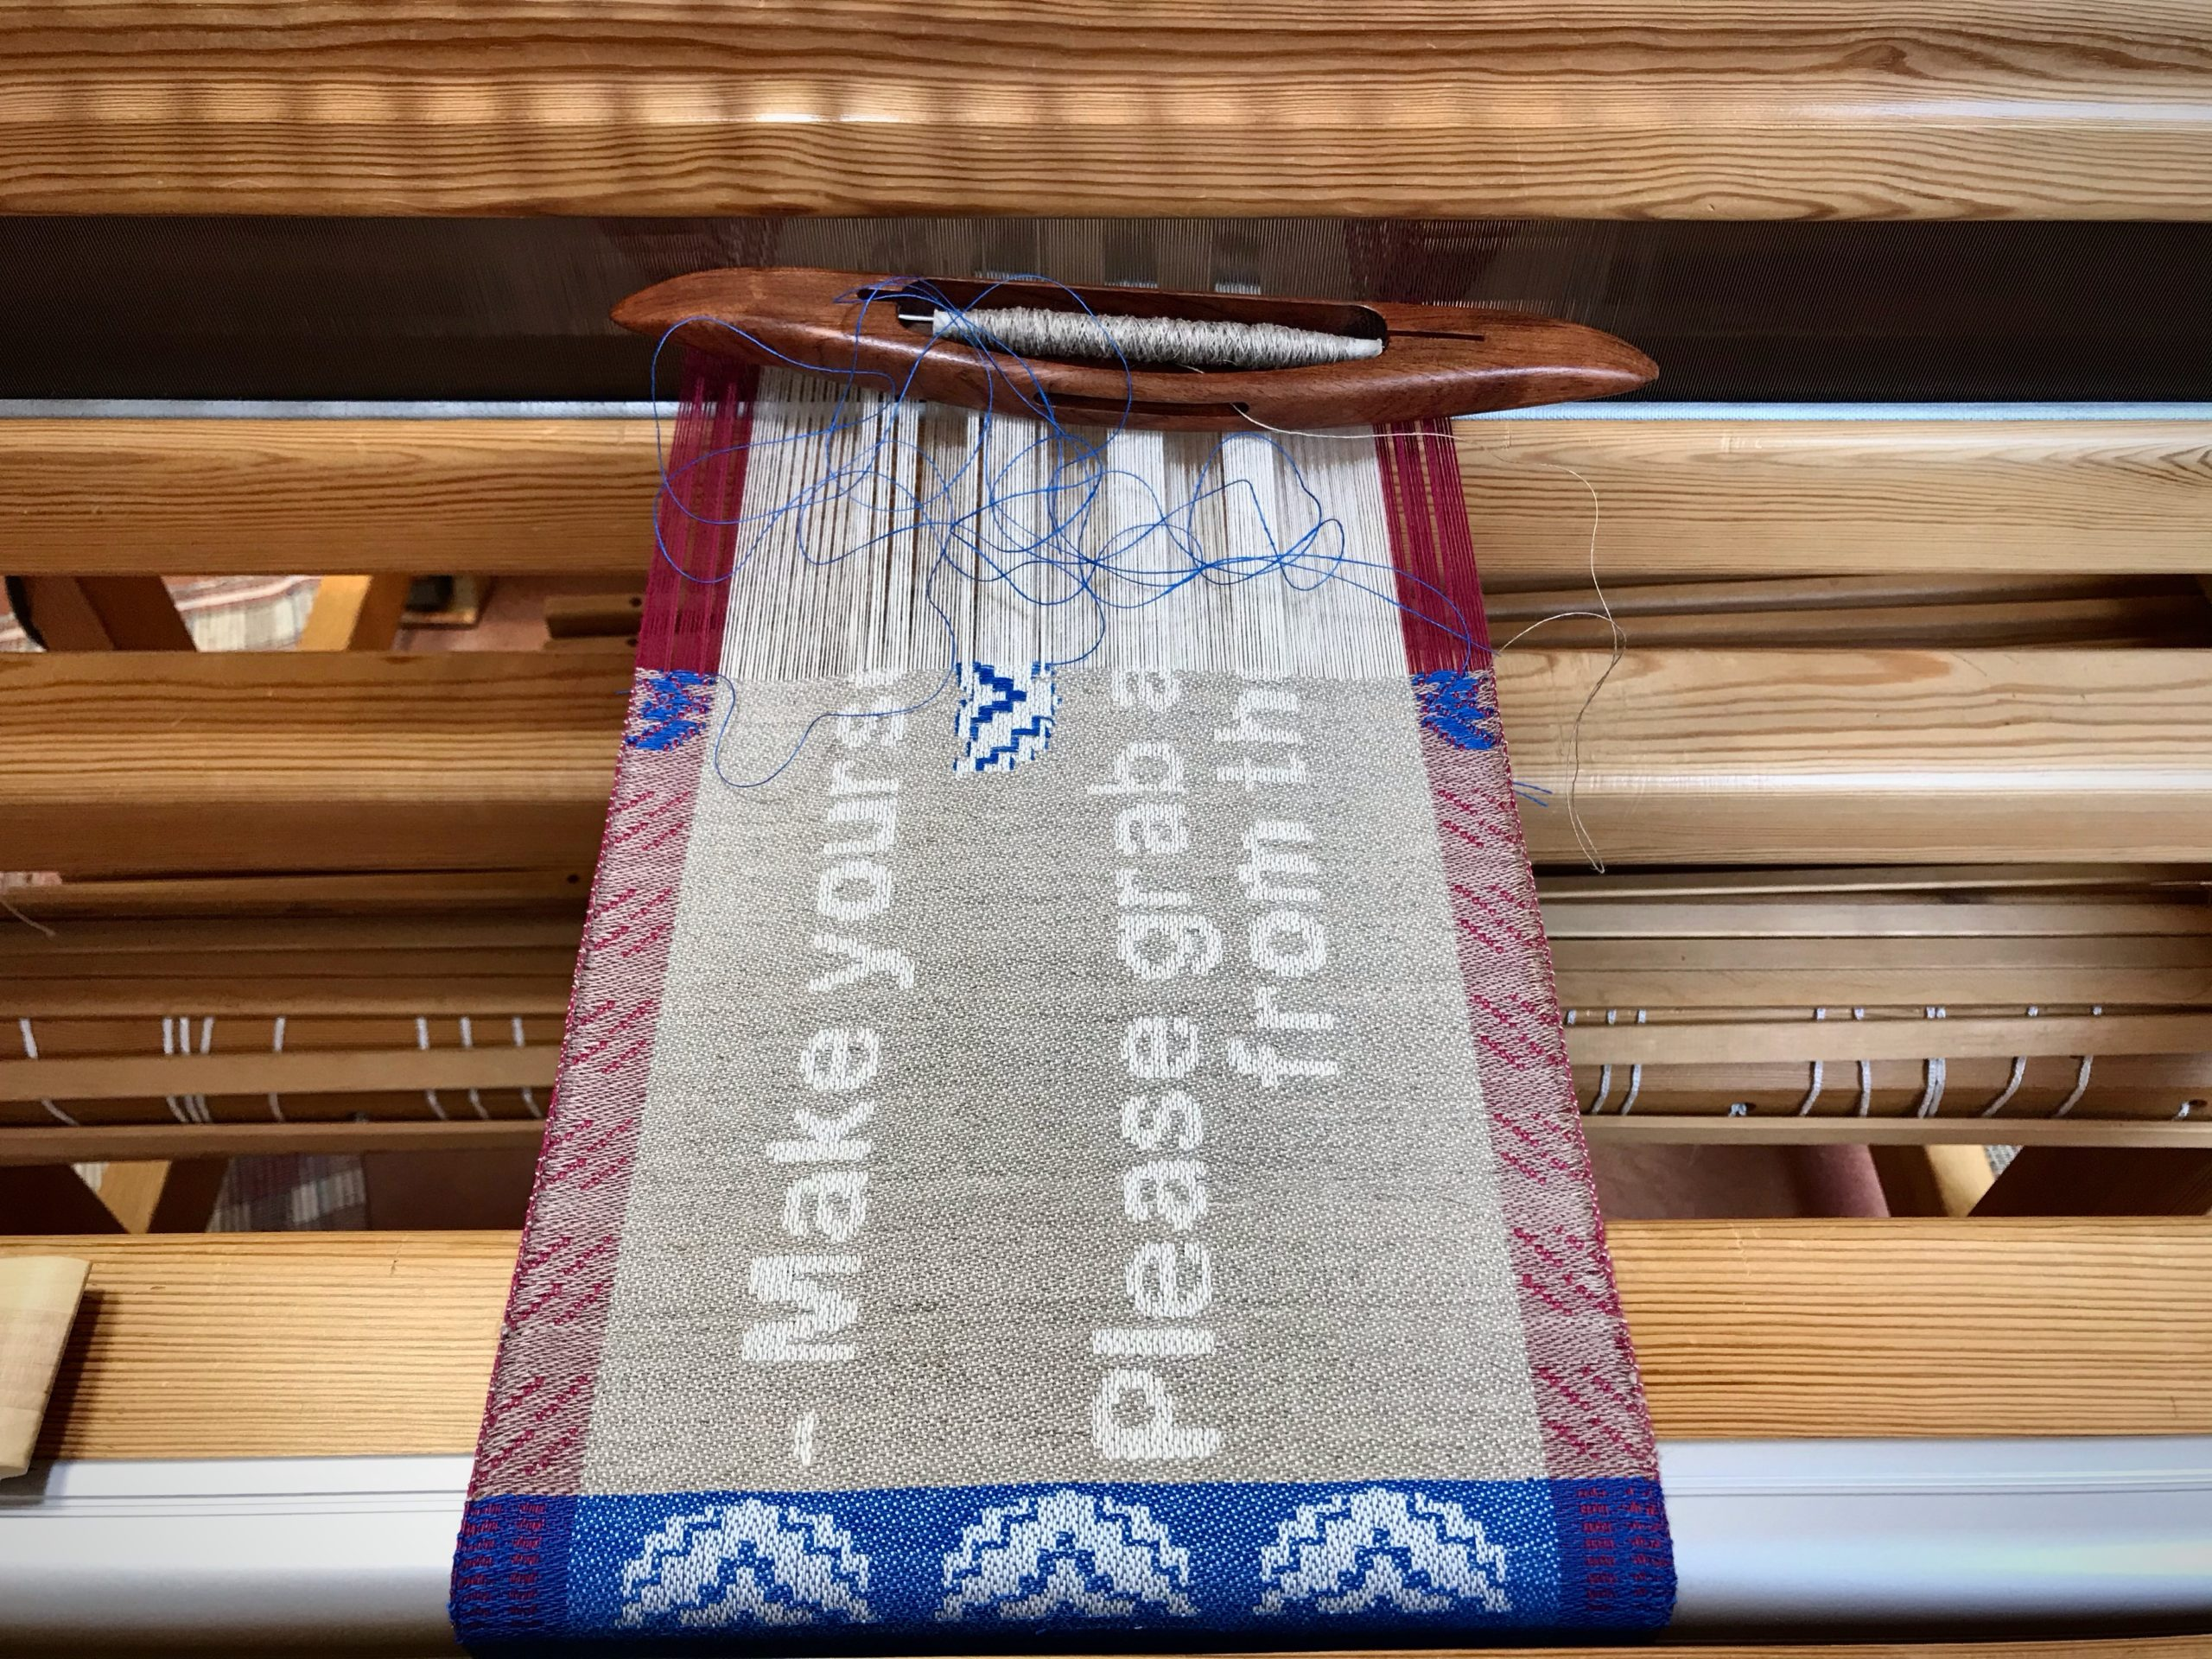 Drawloom. Weaving a sign for house guests.